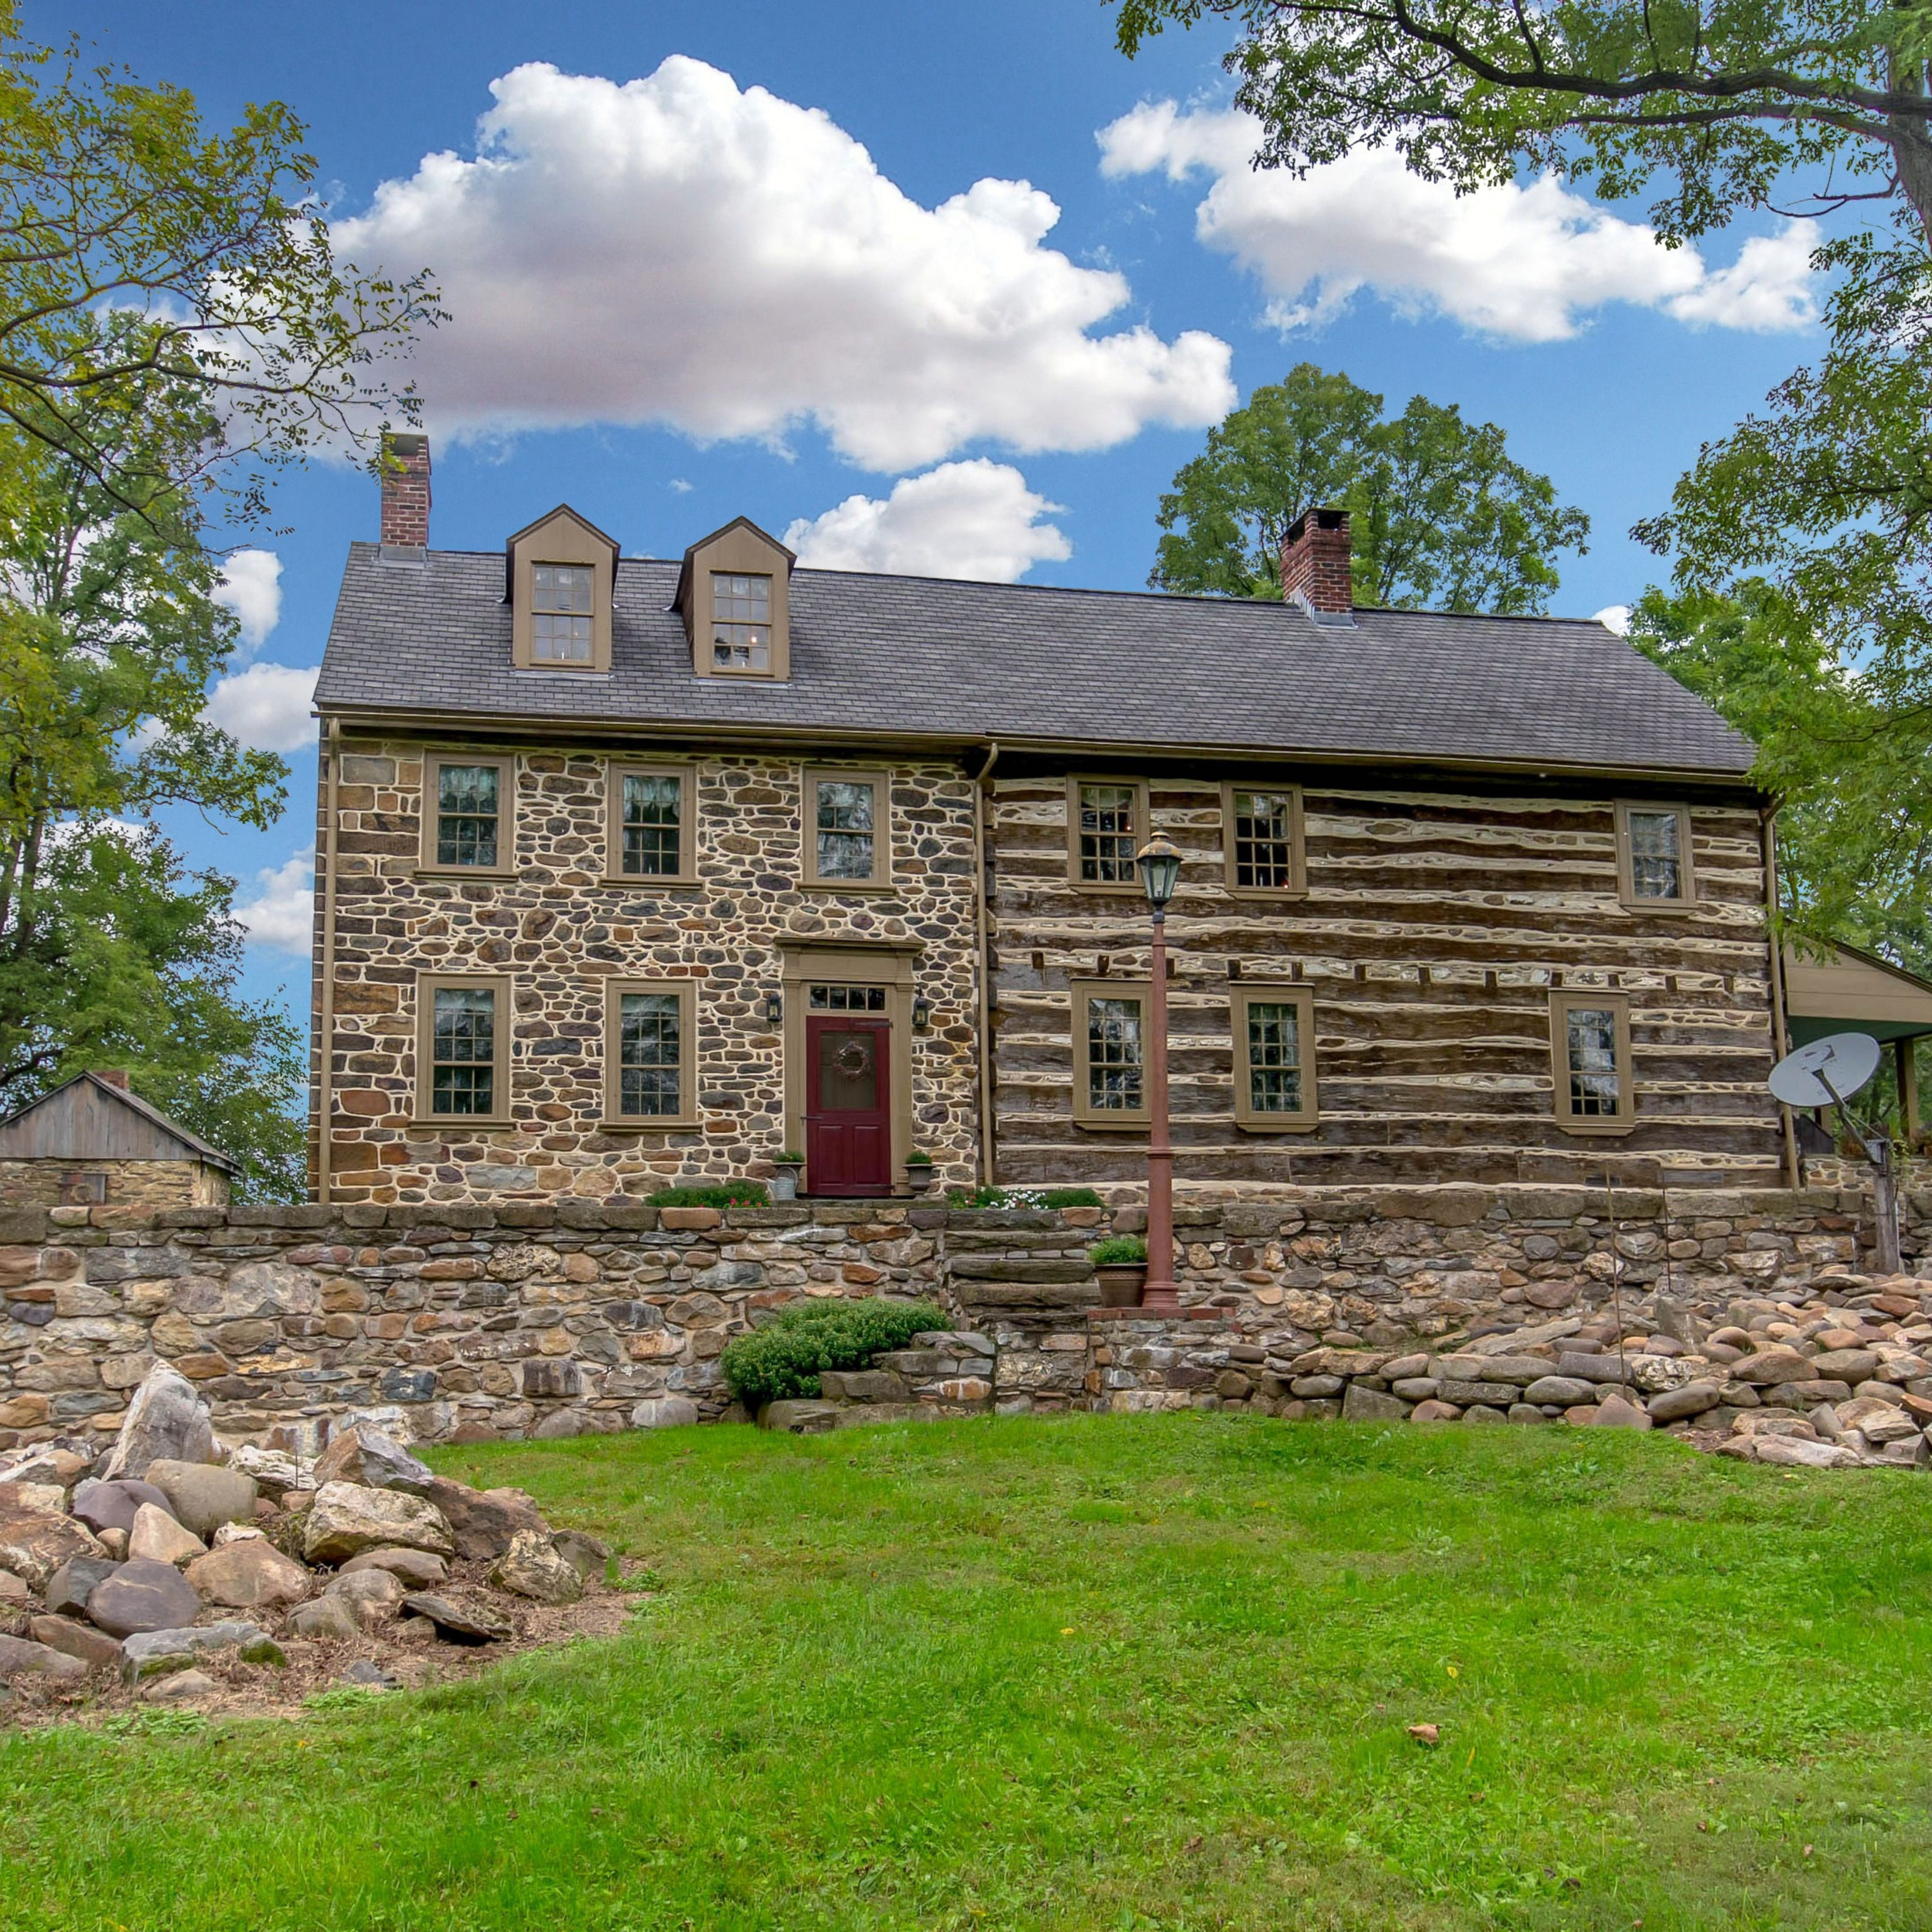 This 1760's log and mortar cabin and early 1800's stone